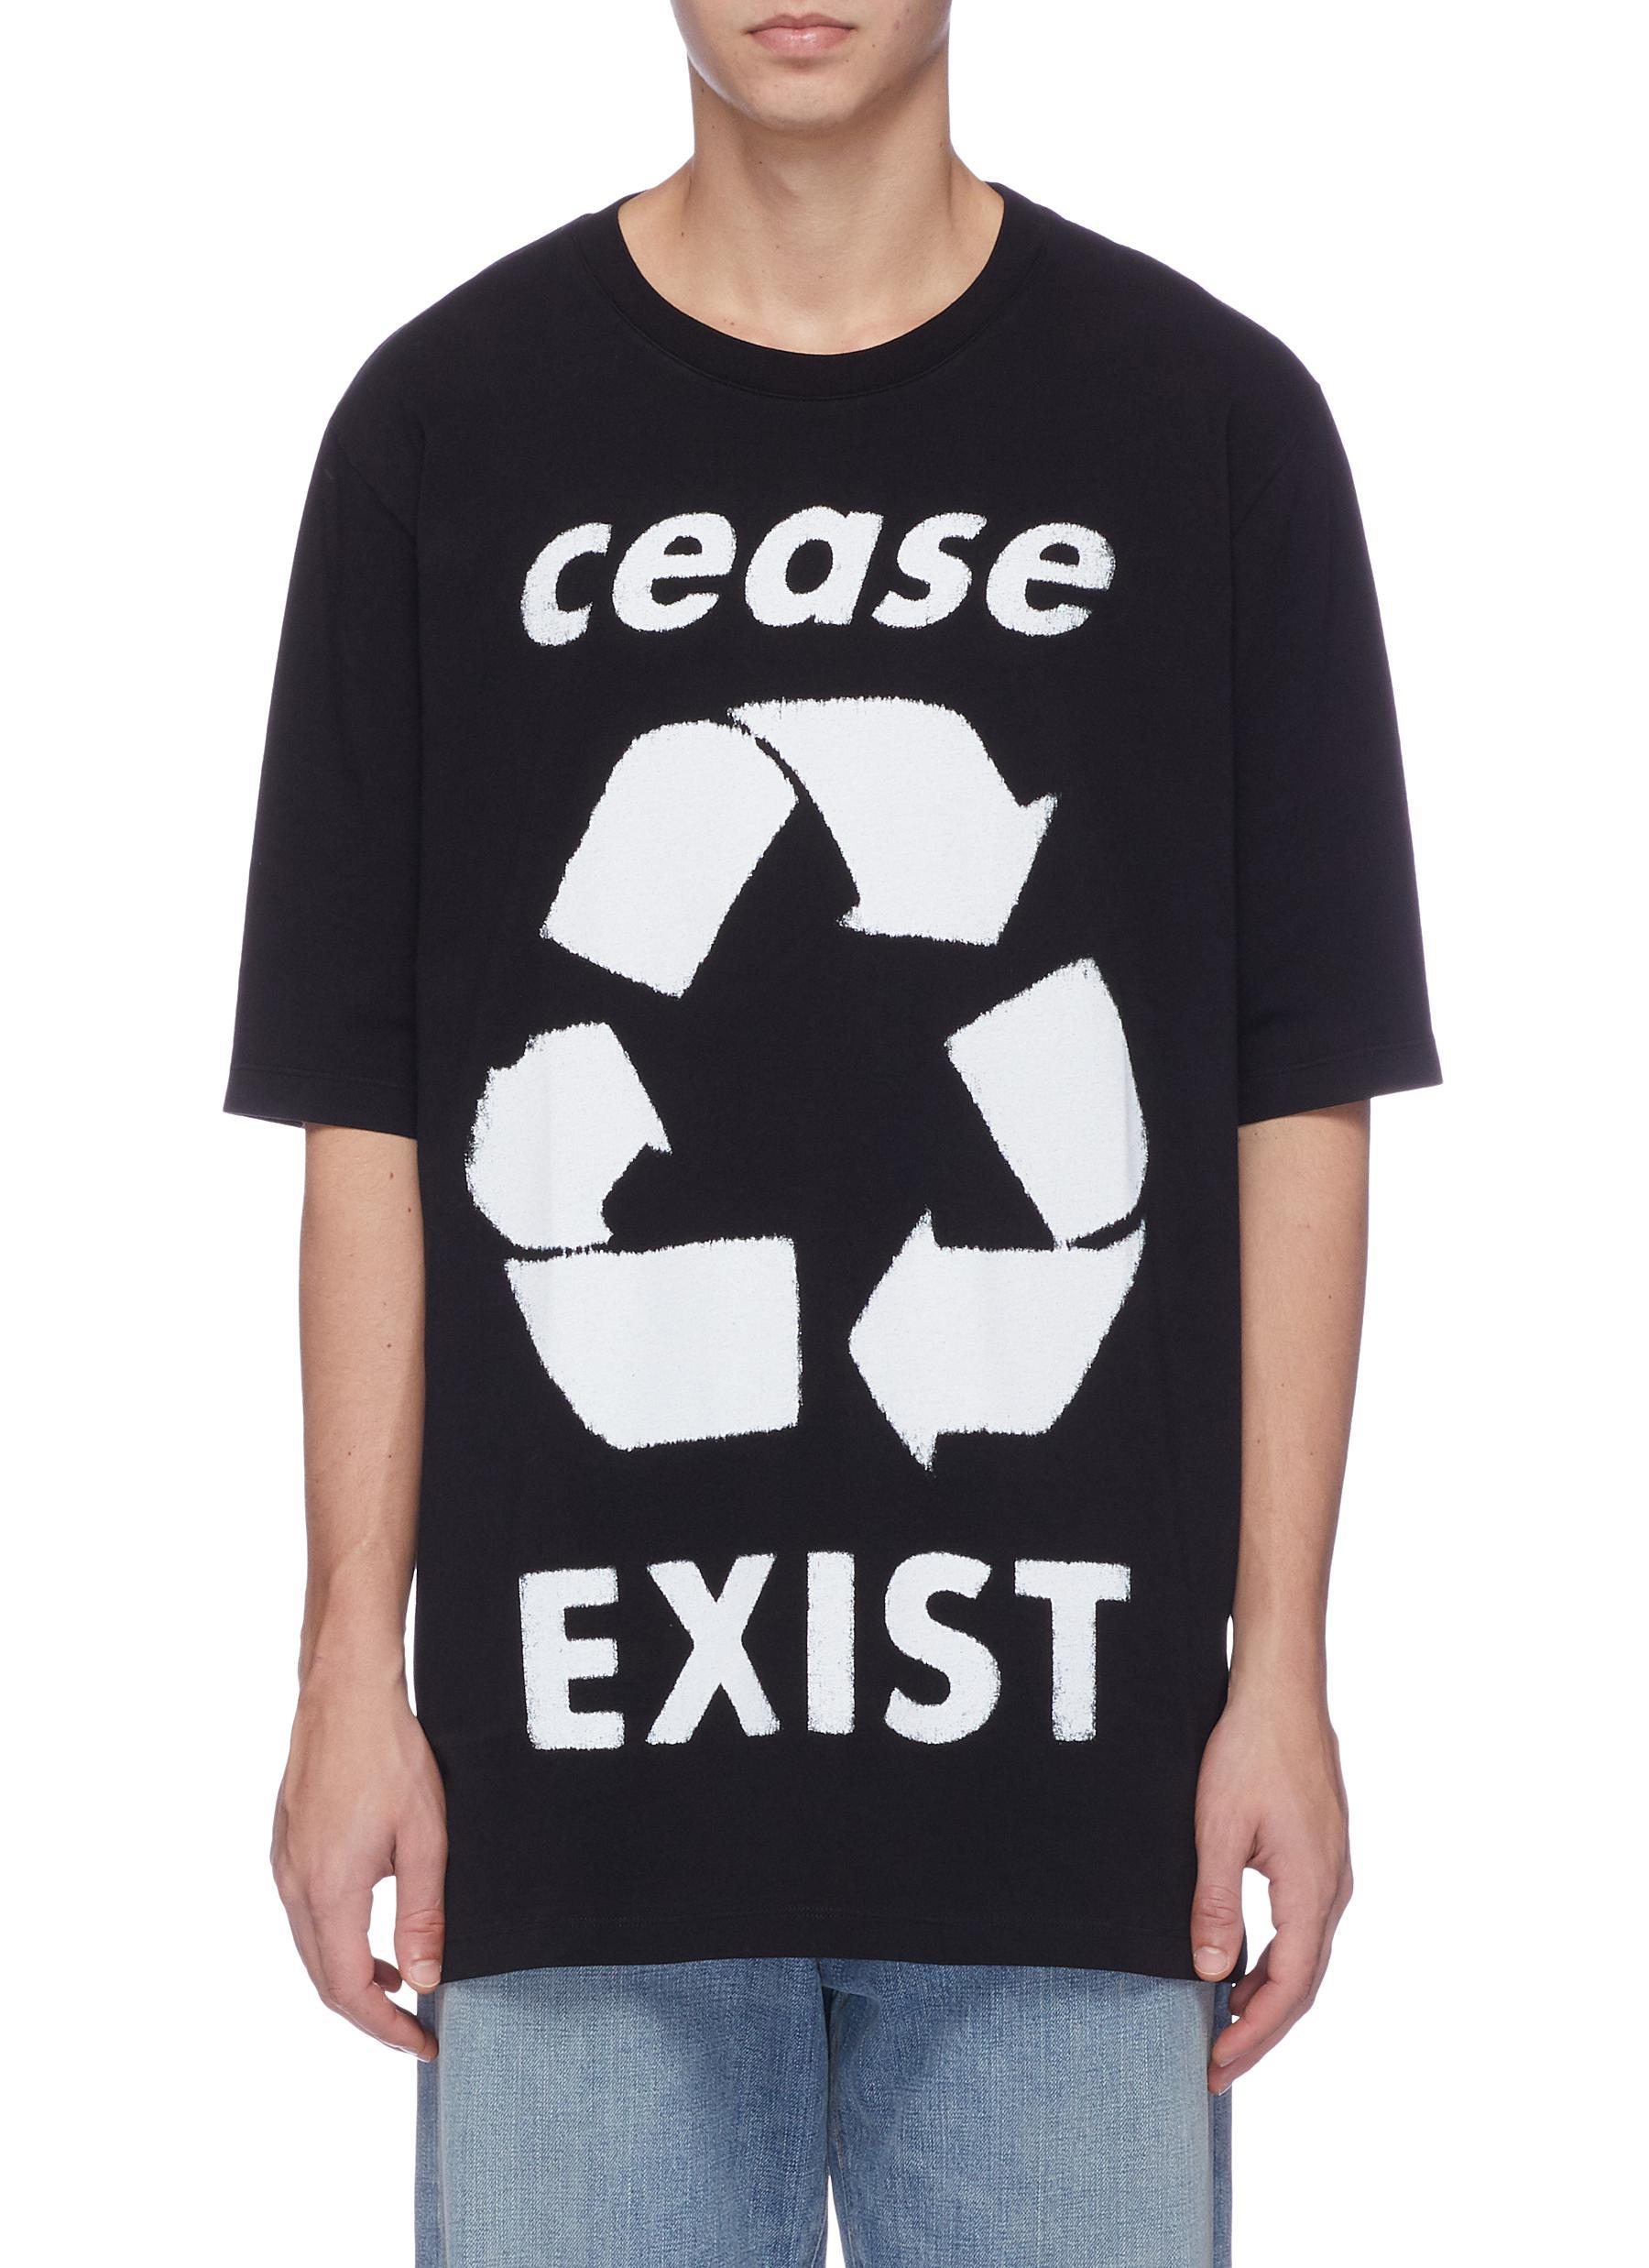 Lyst faith connexion cease exist recycle print t shirt in black view fullscreen thecheapjerseys Image collections